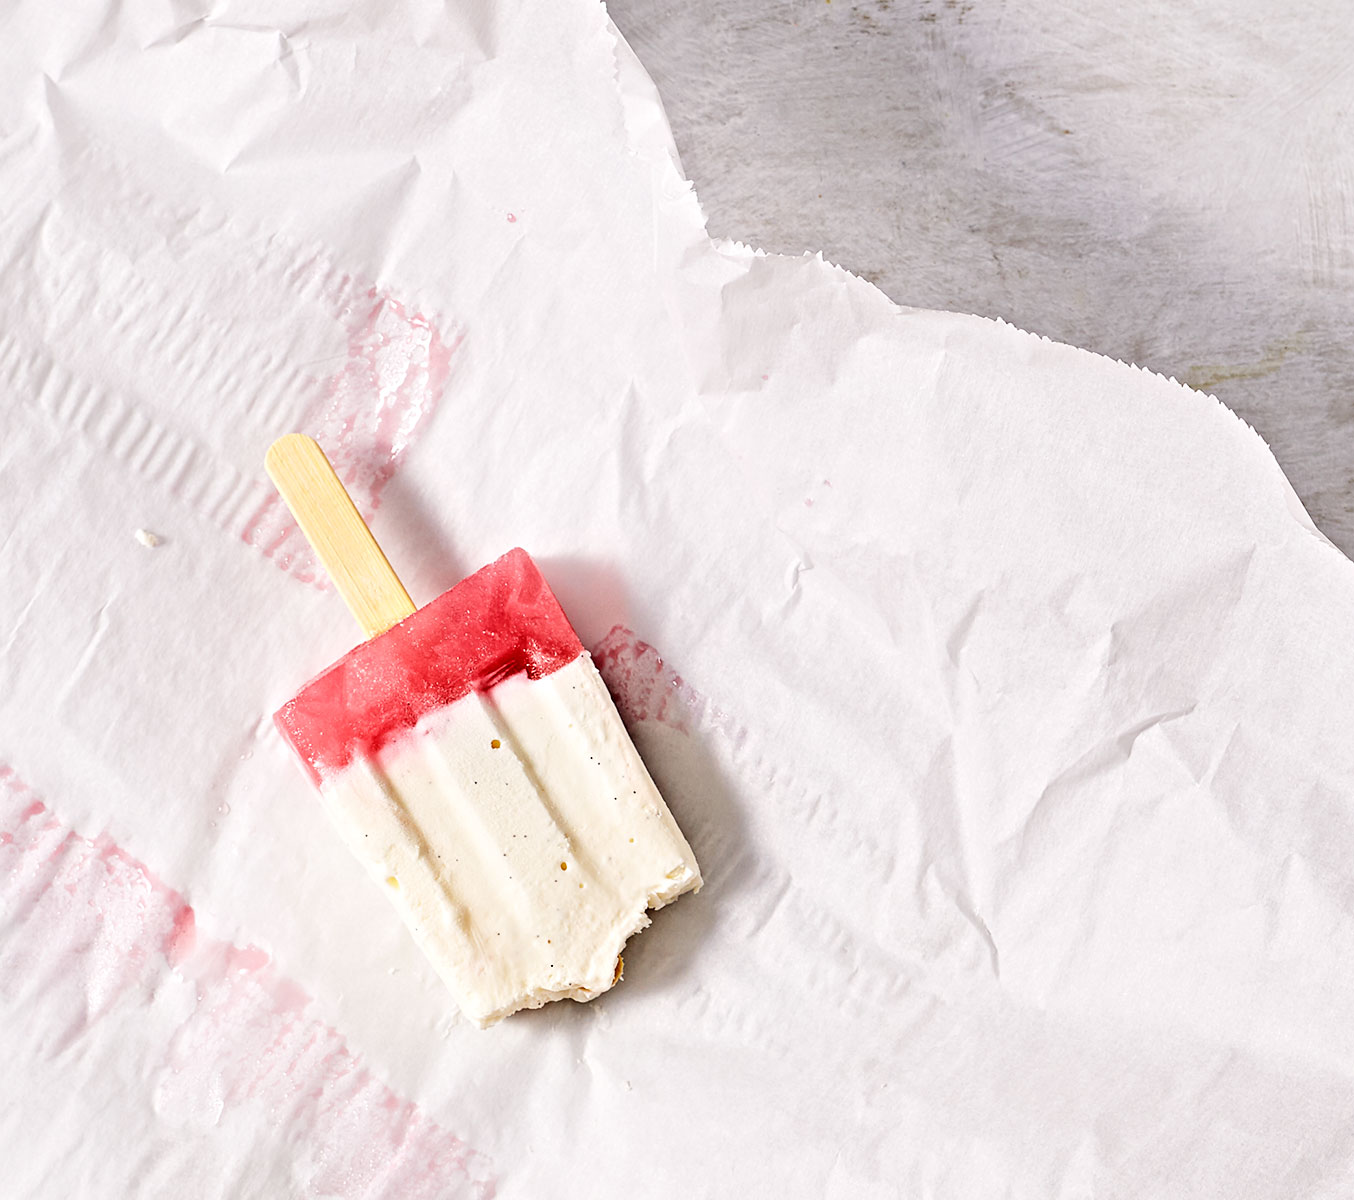 Creamy cheesecake rhubarb popsicle with bites taken out.